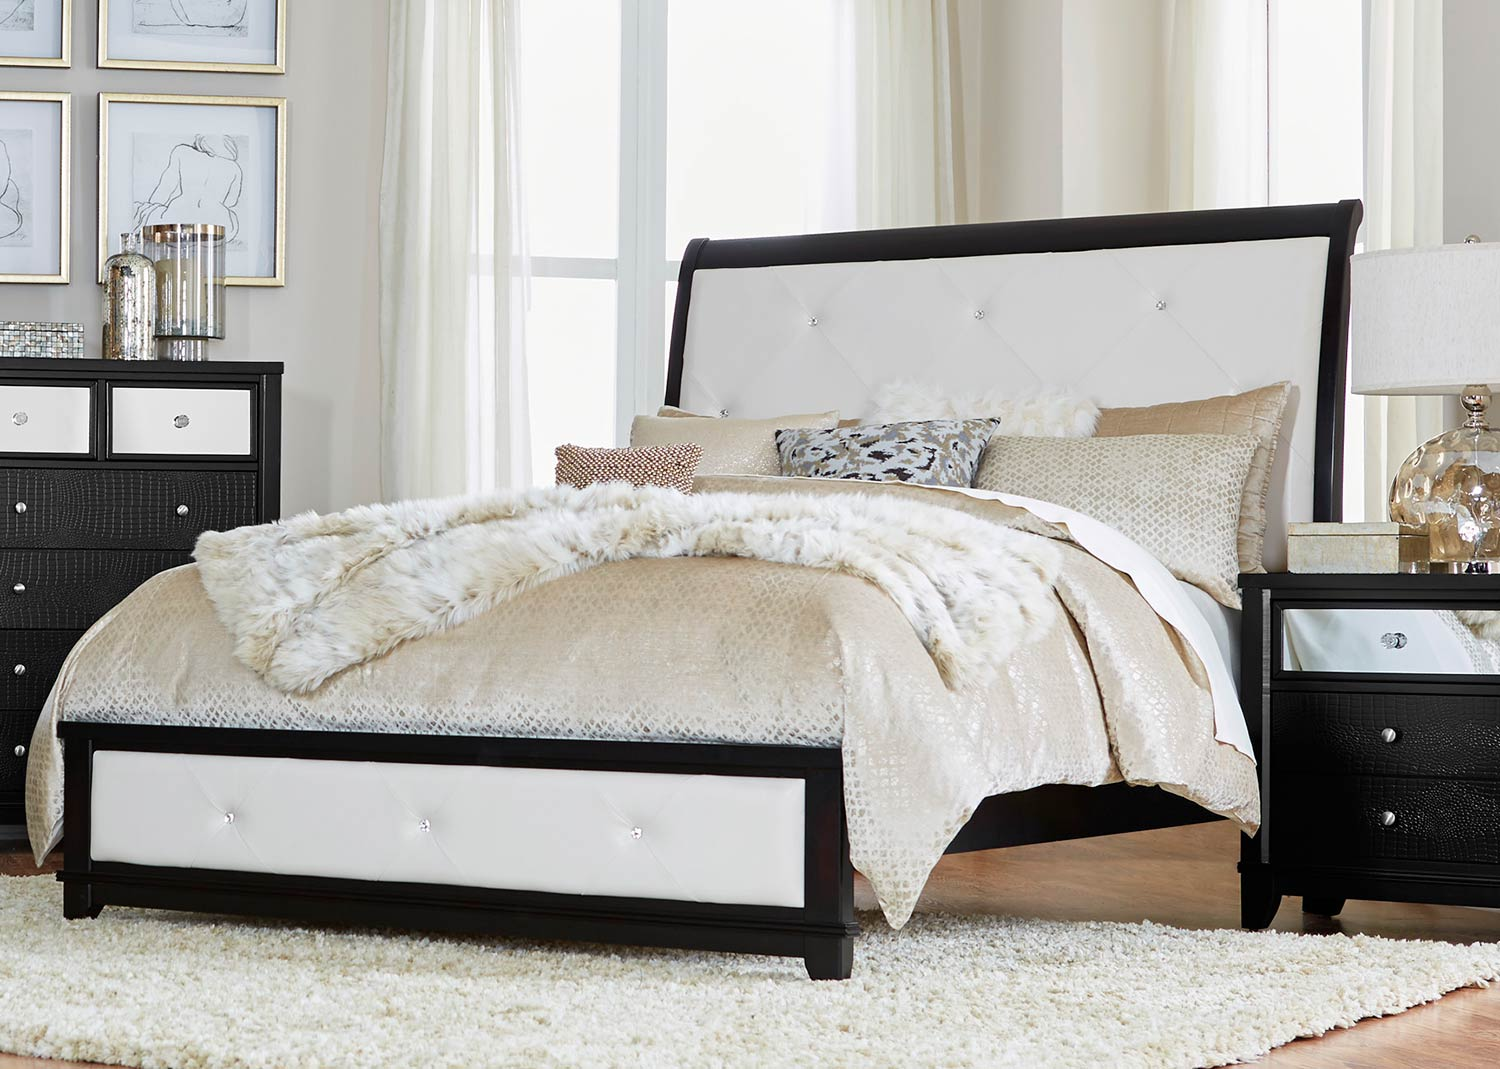 Homelegance Odelia Sleigh Bed - Black - Pearl White Bi-Cast Vinyl